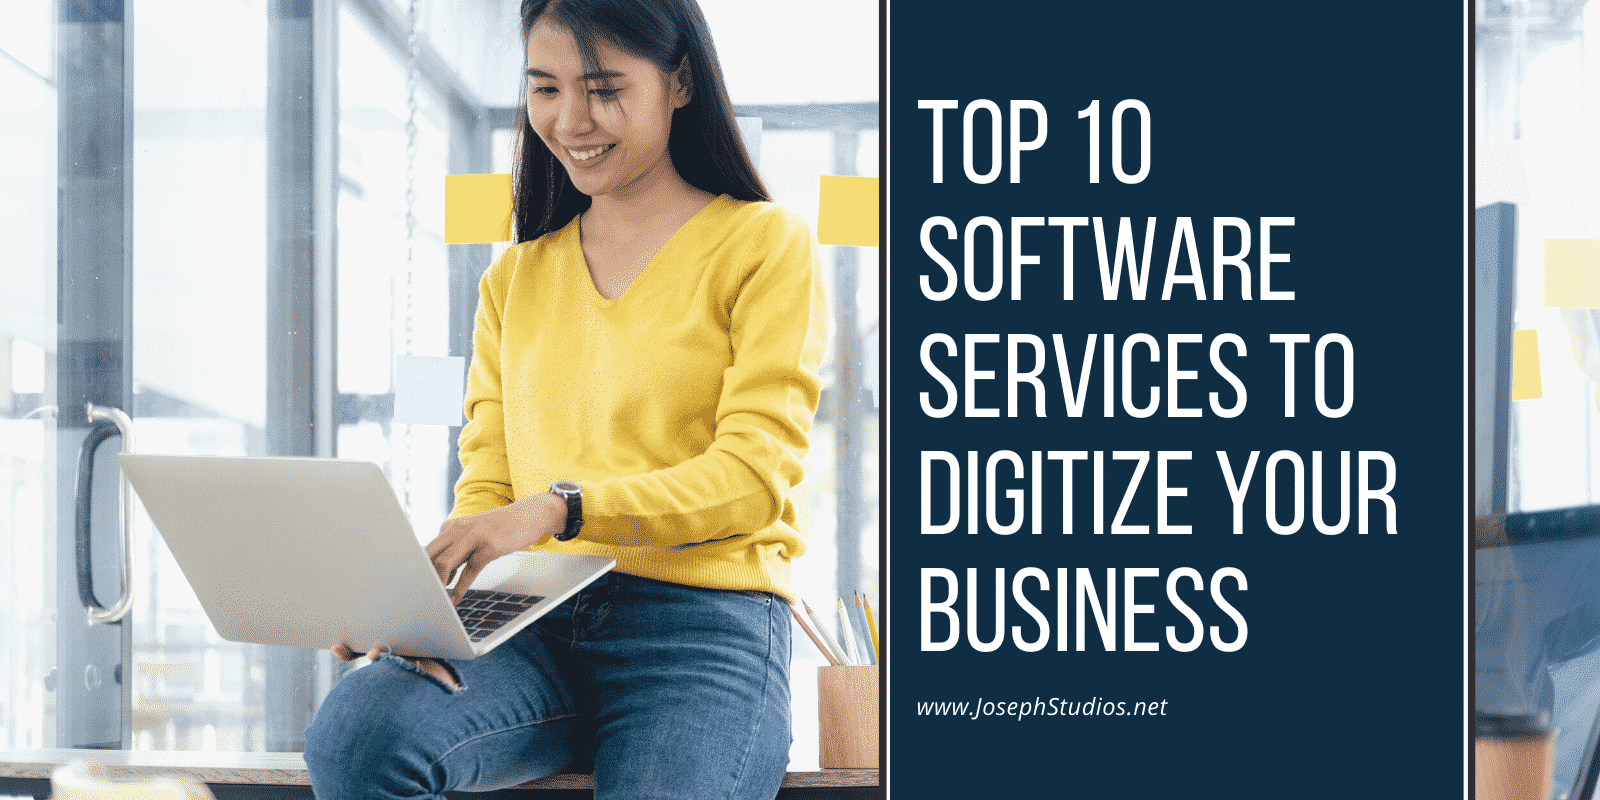 Top 9 Software Services To Digitize Your Business